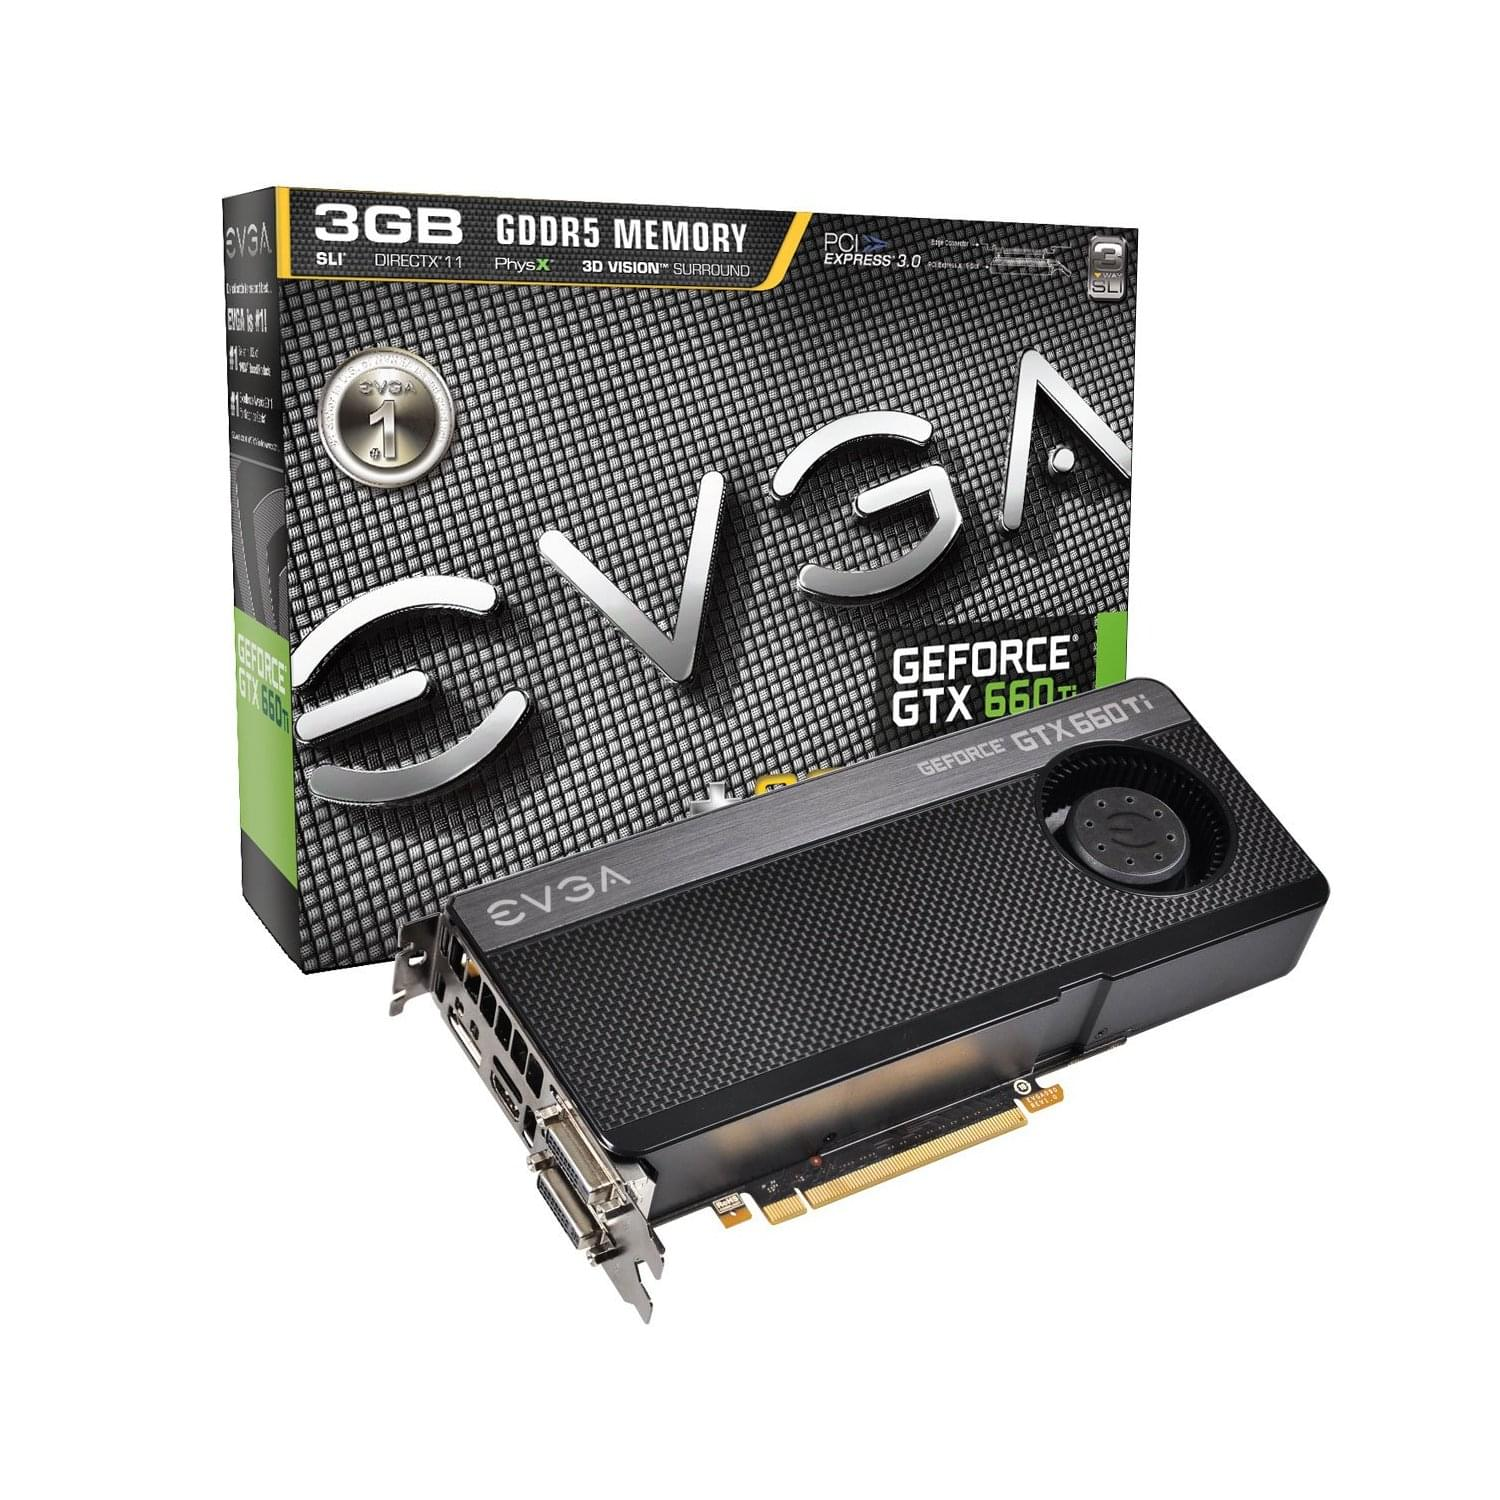 EVGA GTX 660 TI SuperClocked 3GB 03G-P4-3663-KR - Carte graphique - 0